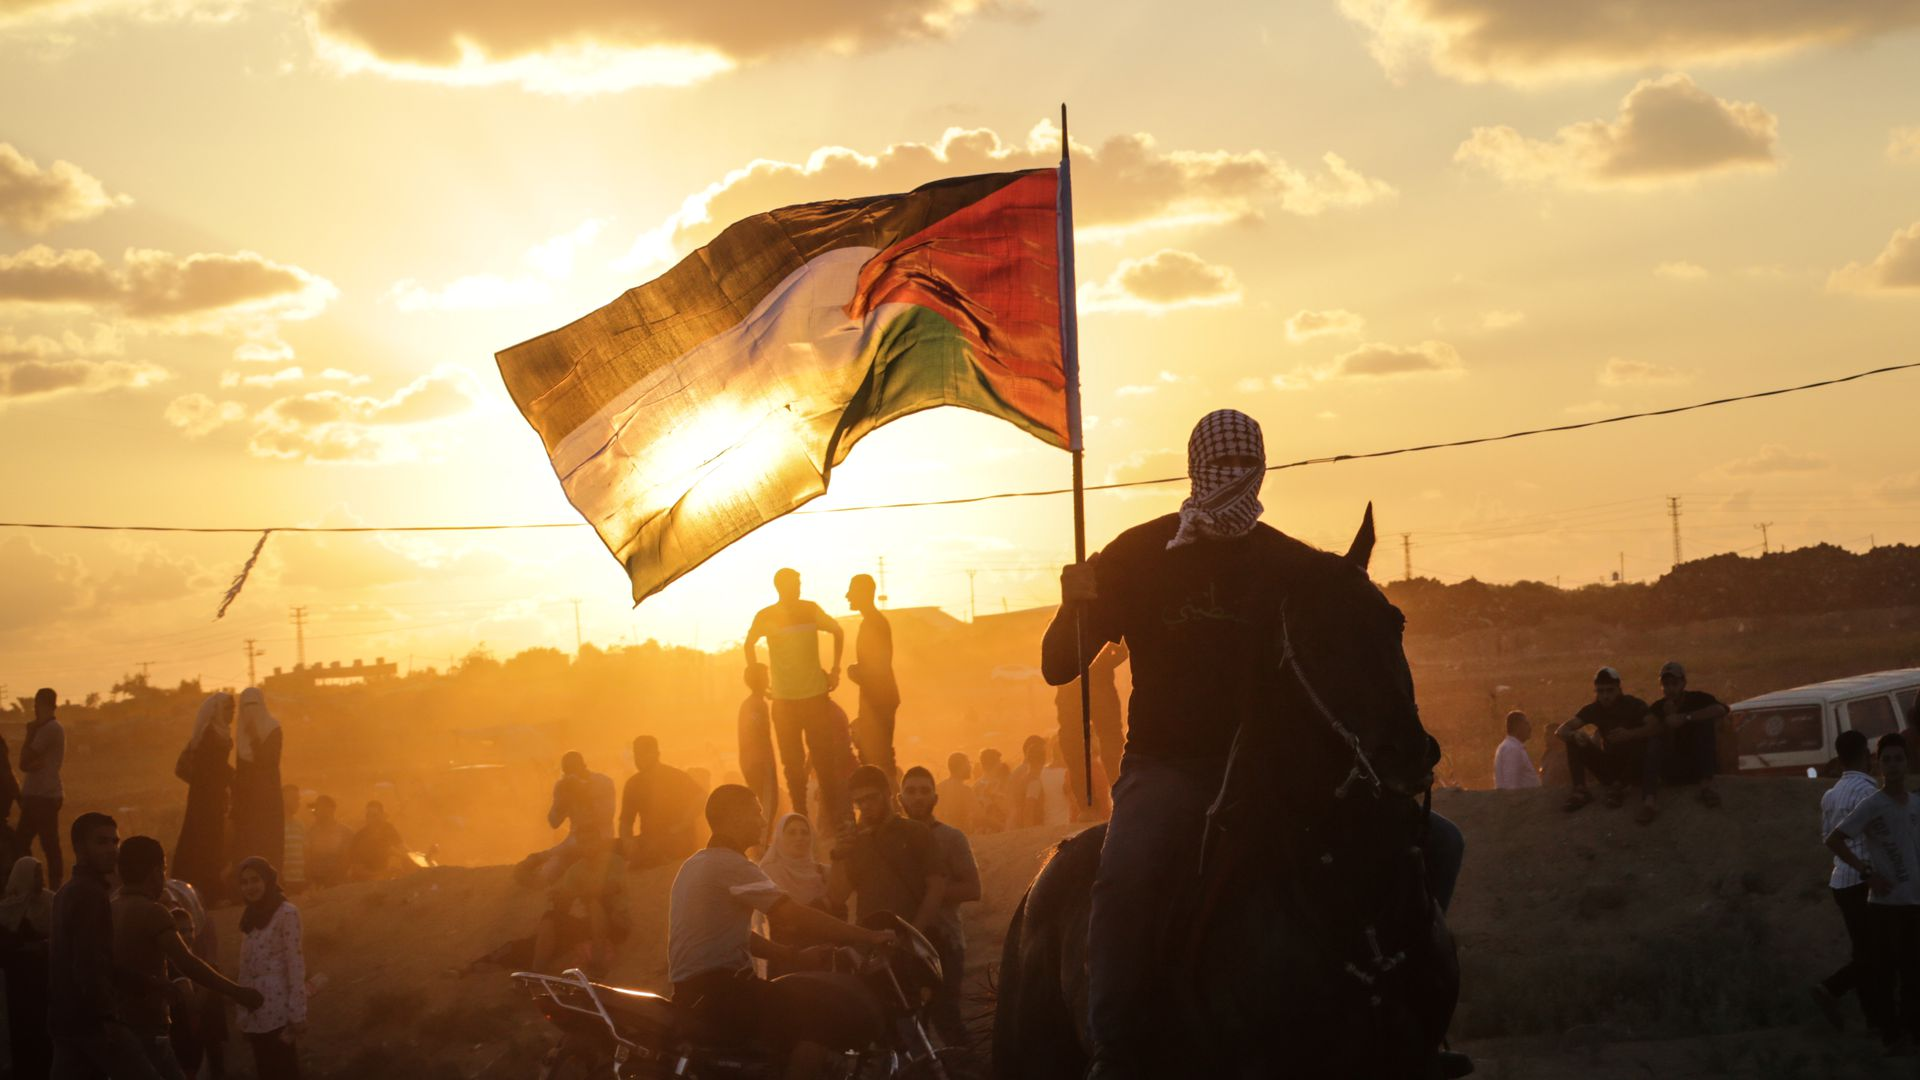 A Palestinian man riding a horse and waving a Palestinian flag during clashes between Palestinian protesters and the Israeli forces along the Israeli fence East of Gaza City.